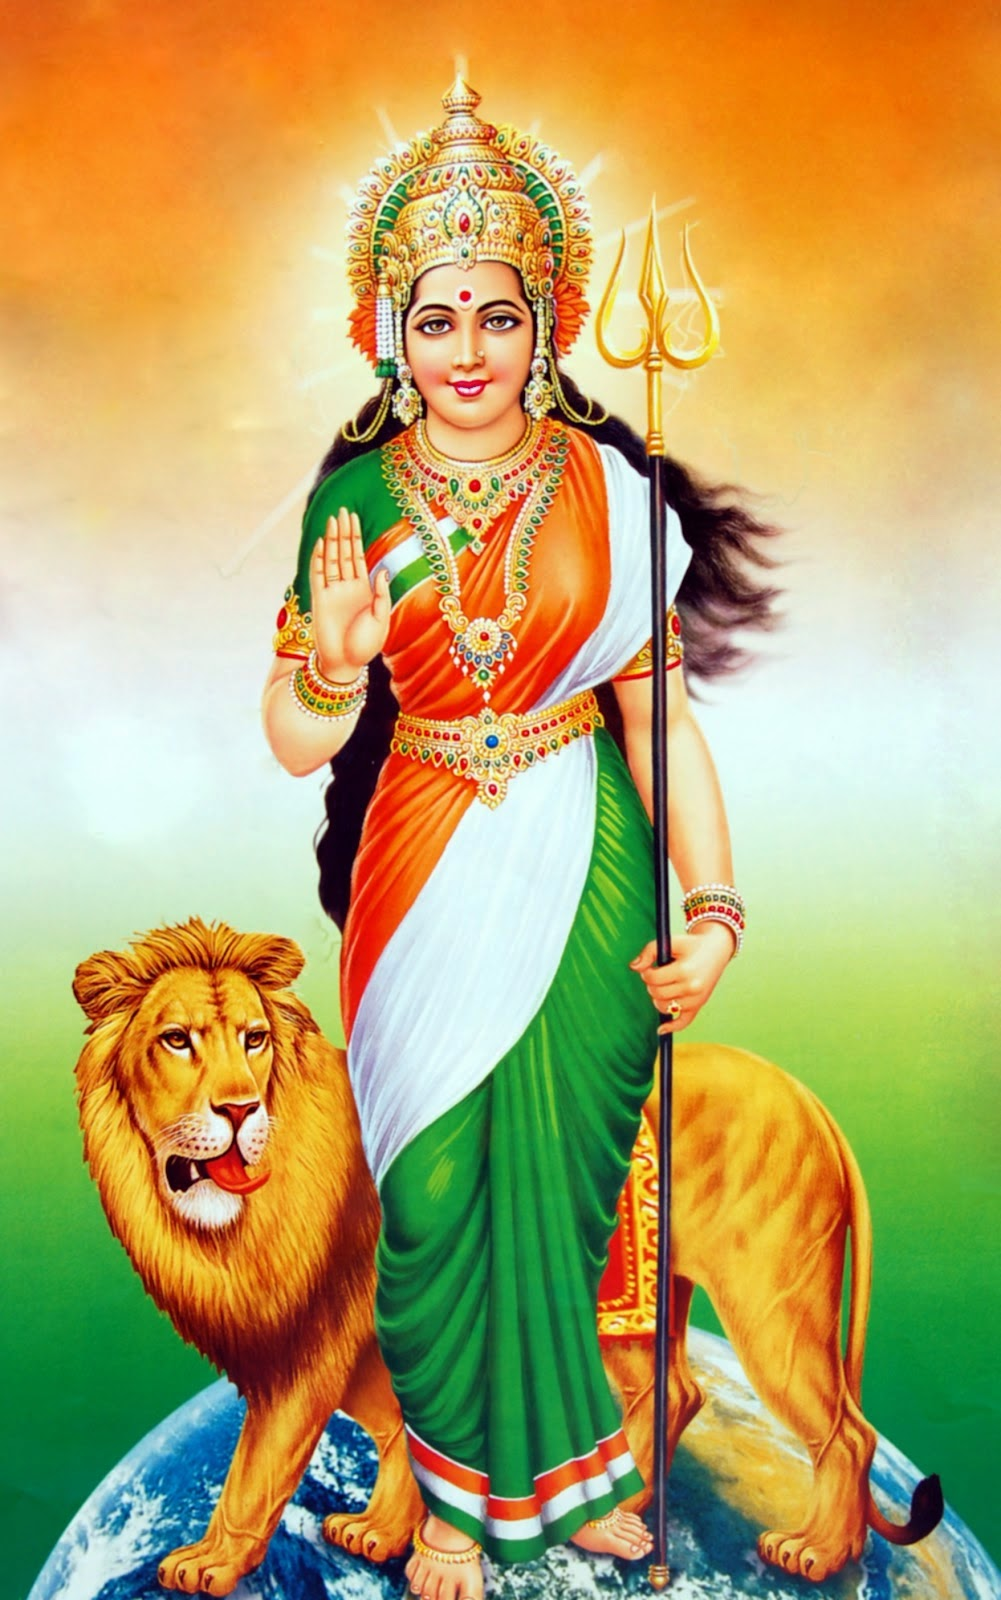 bharatmata - Bharat Mata : The Mother India